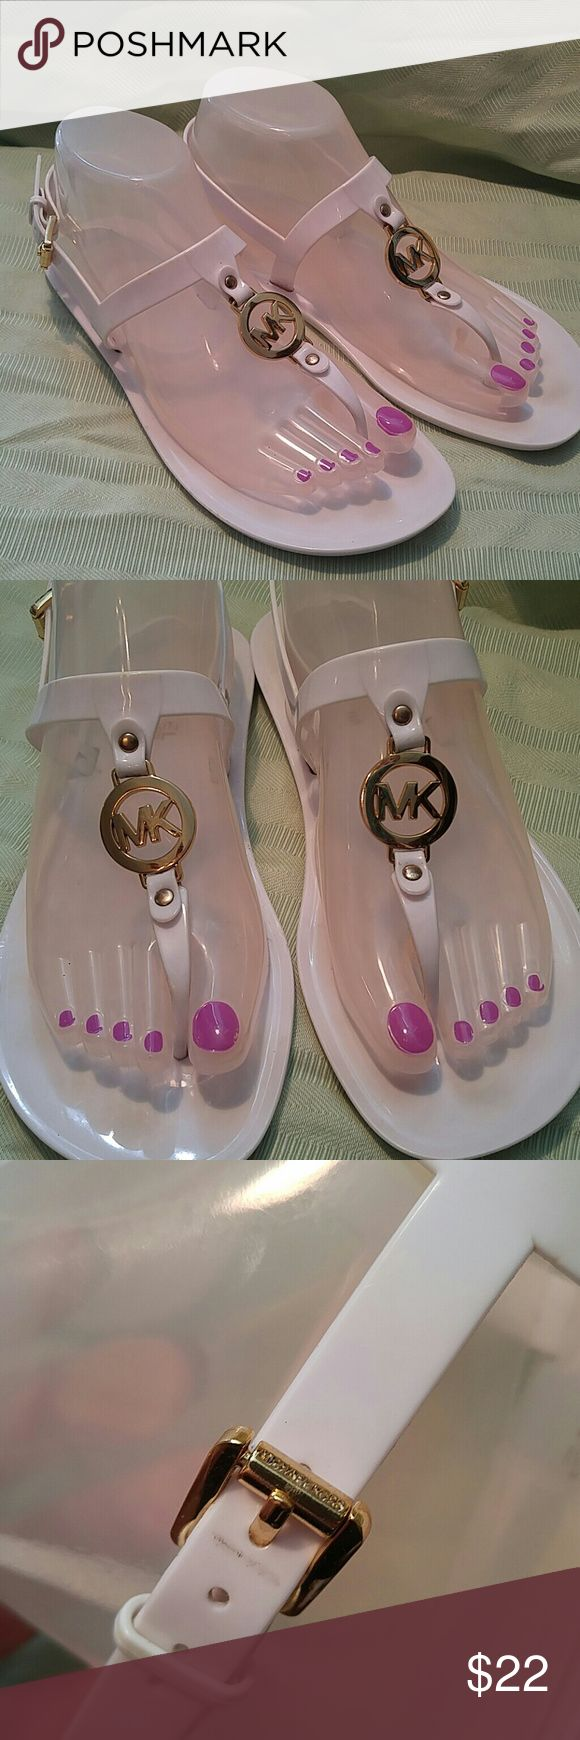 "Michael Kors White Plastic Sandals Gold Trim 8? Michael Kors White Plastic Sandals with Gold Trim. I am pretty sure they are an  8. Measures 9 3/4"" end to end on the bottom.  Preowned but still in pretty good shape. Michael Kors Shoes Sandals"